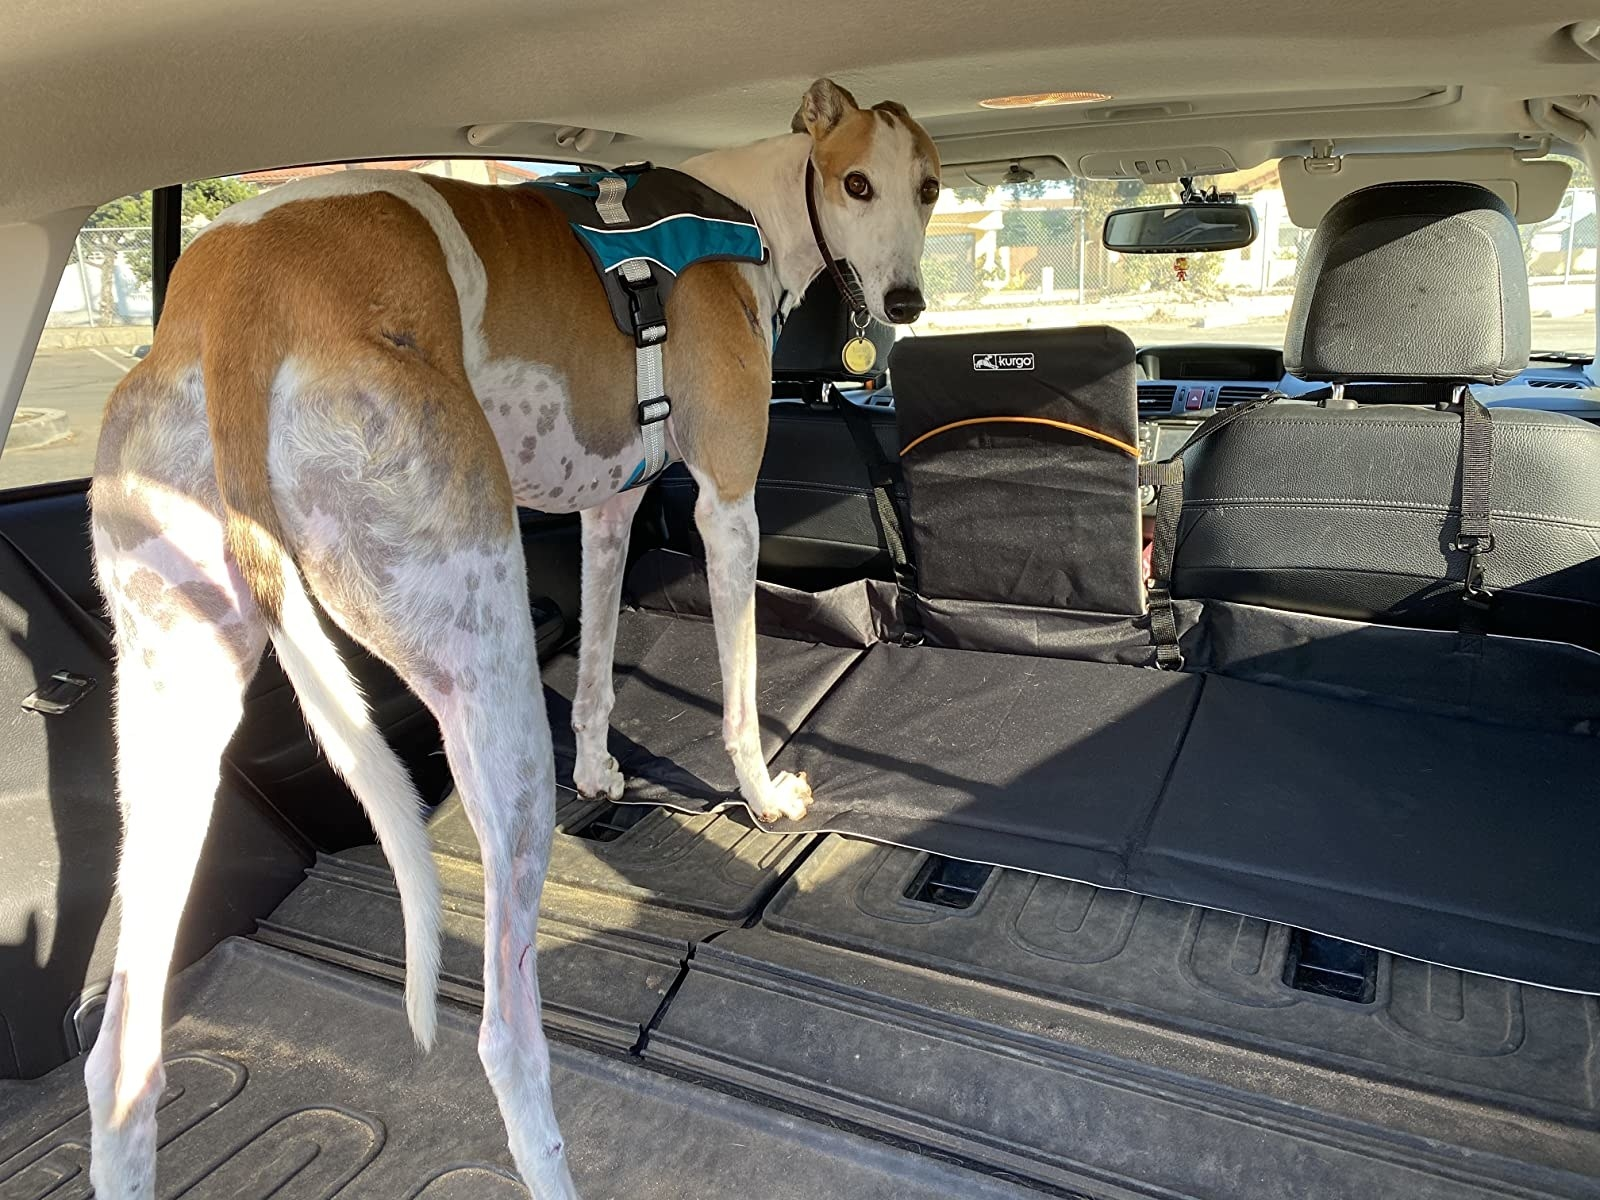 reviewer photo showing their large dog in the backseat of their vehicle, fitting only thanks to the car seat extender